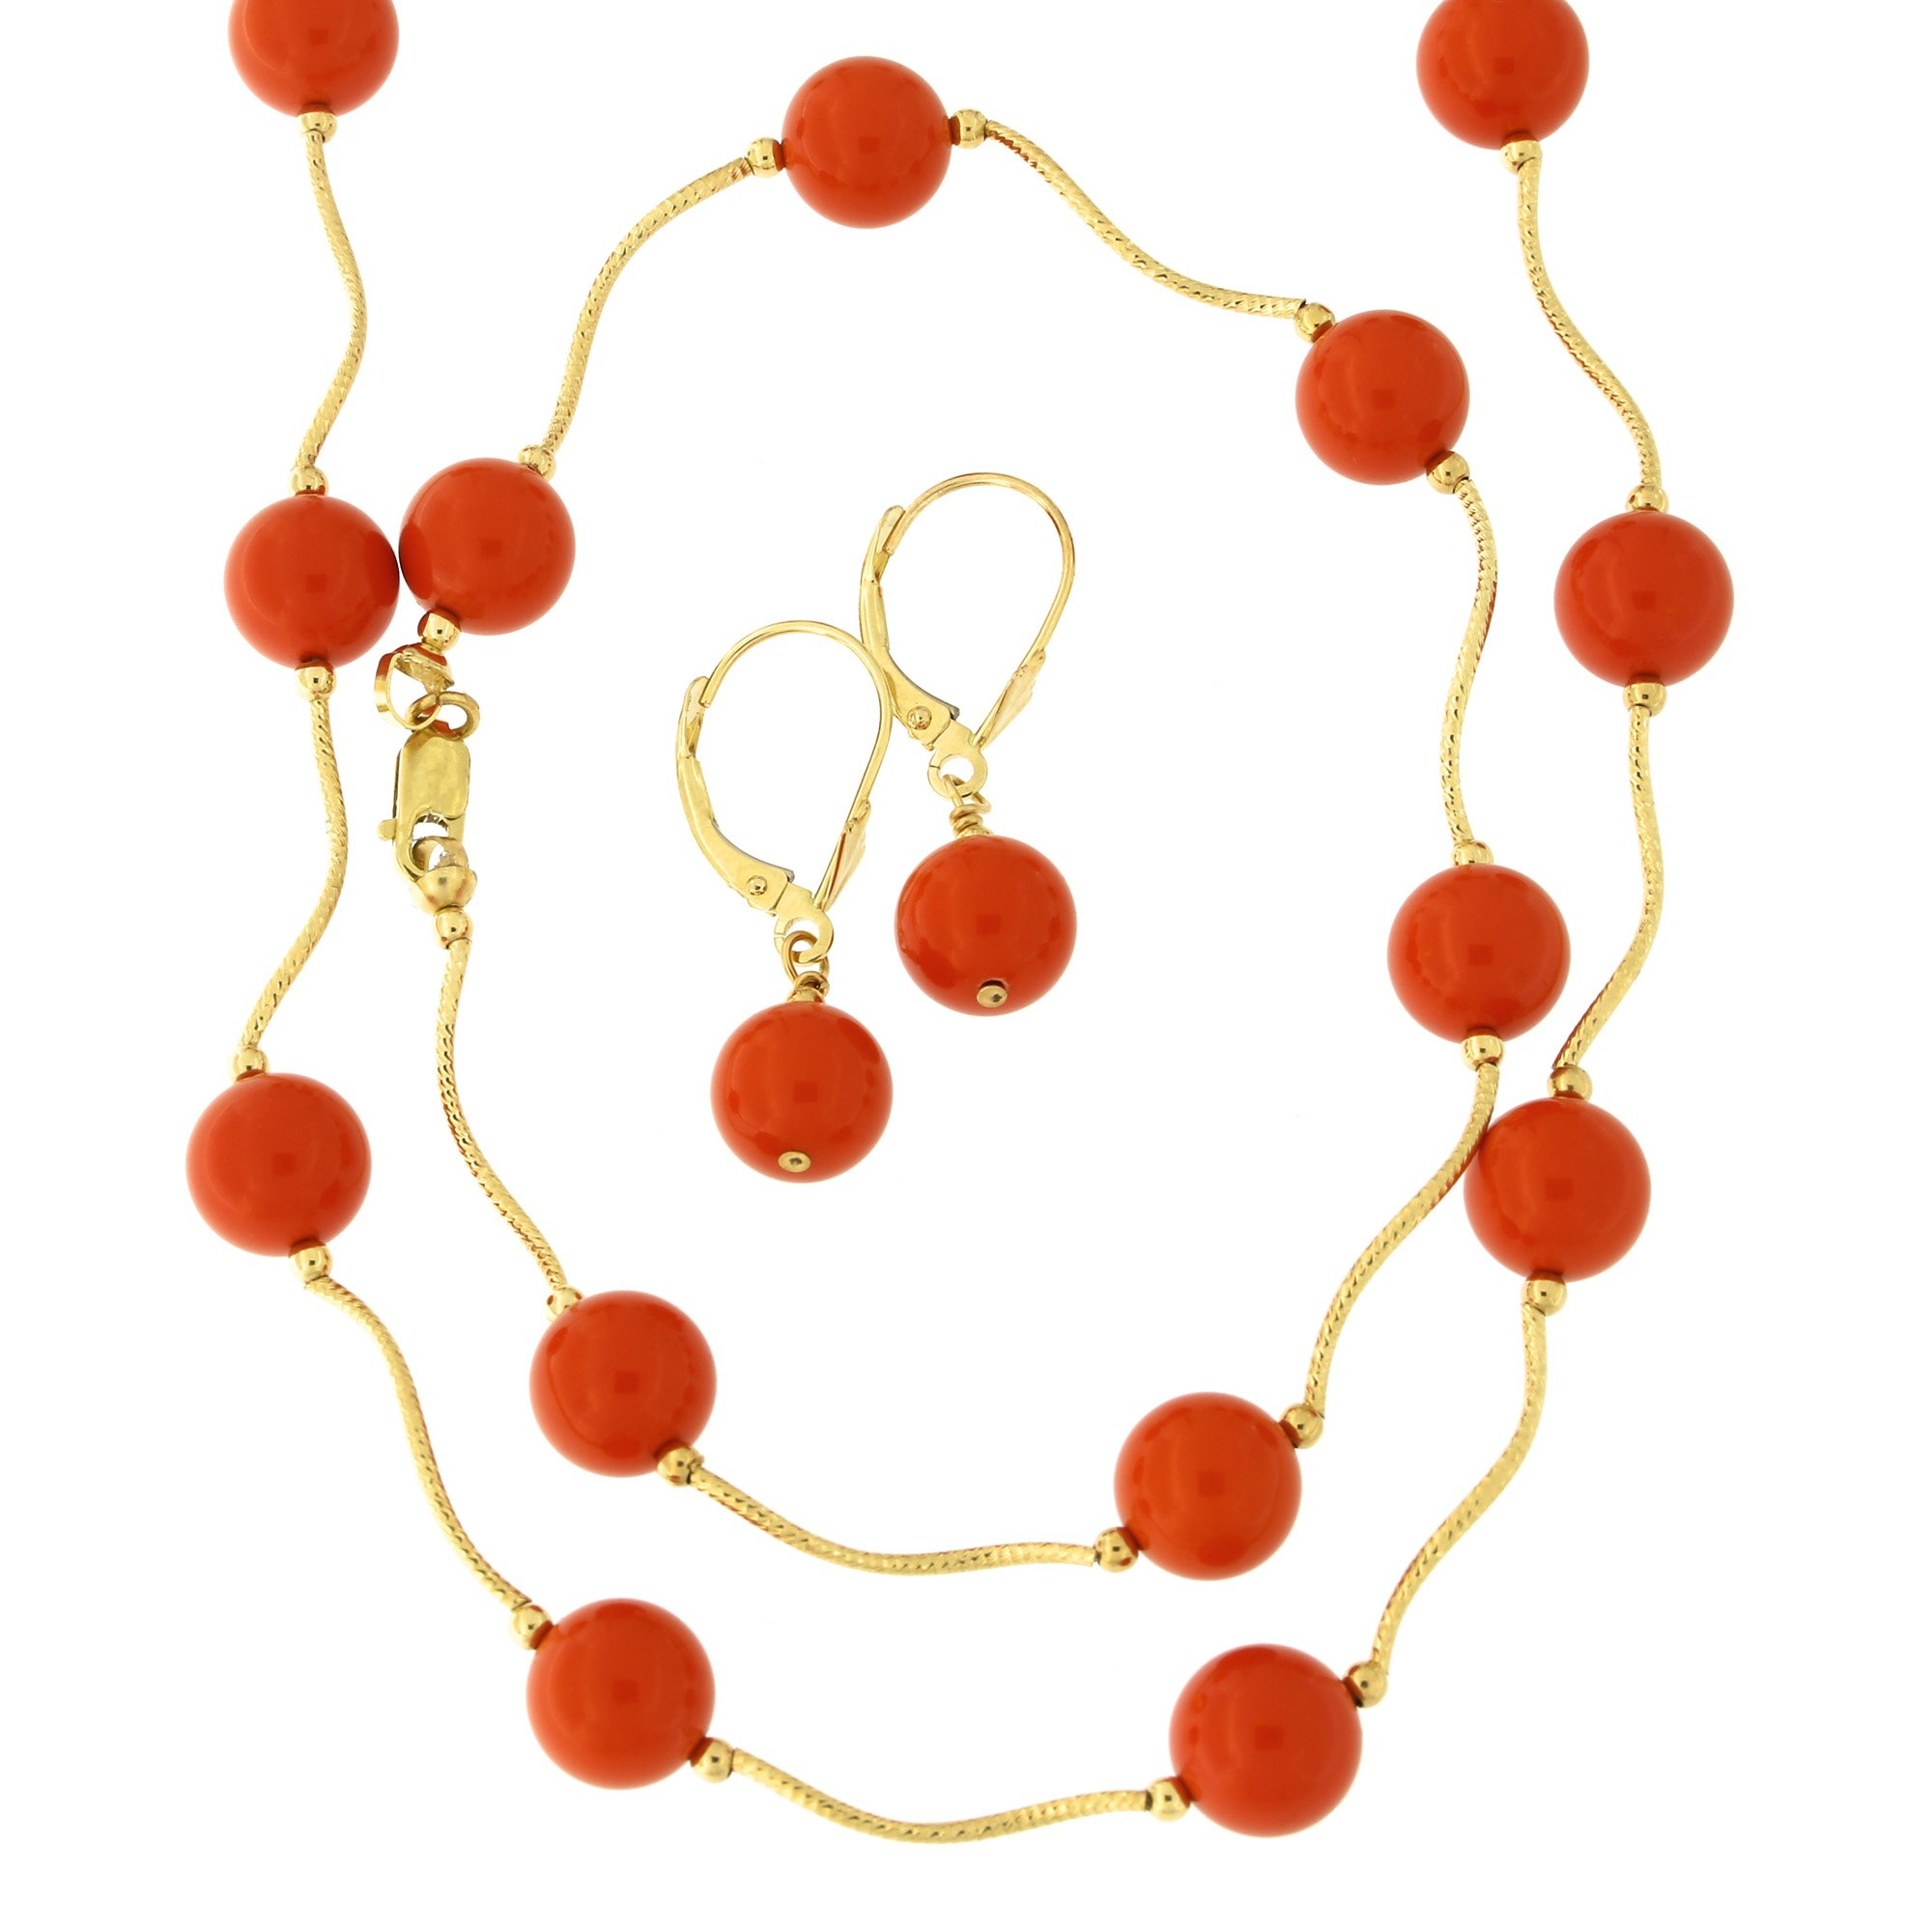 14k Yellow Gold Diamond Cut 8mm Simulated Coral Station Necklace, Earrings and Bracelet Set by